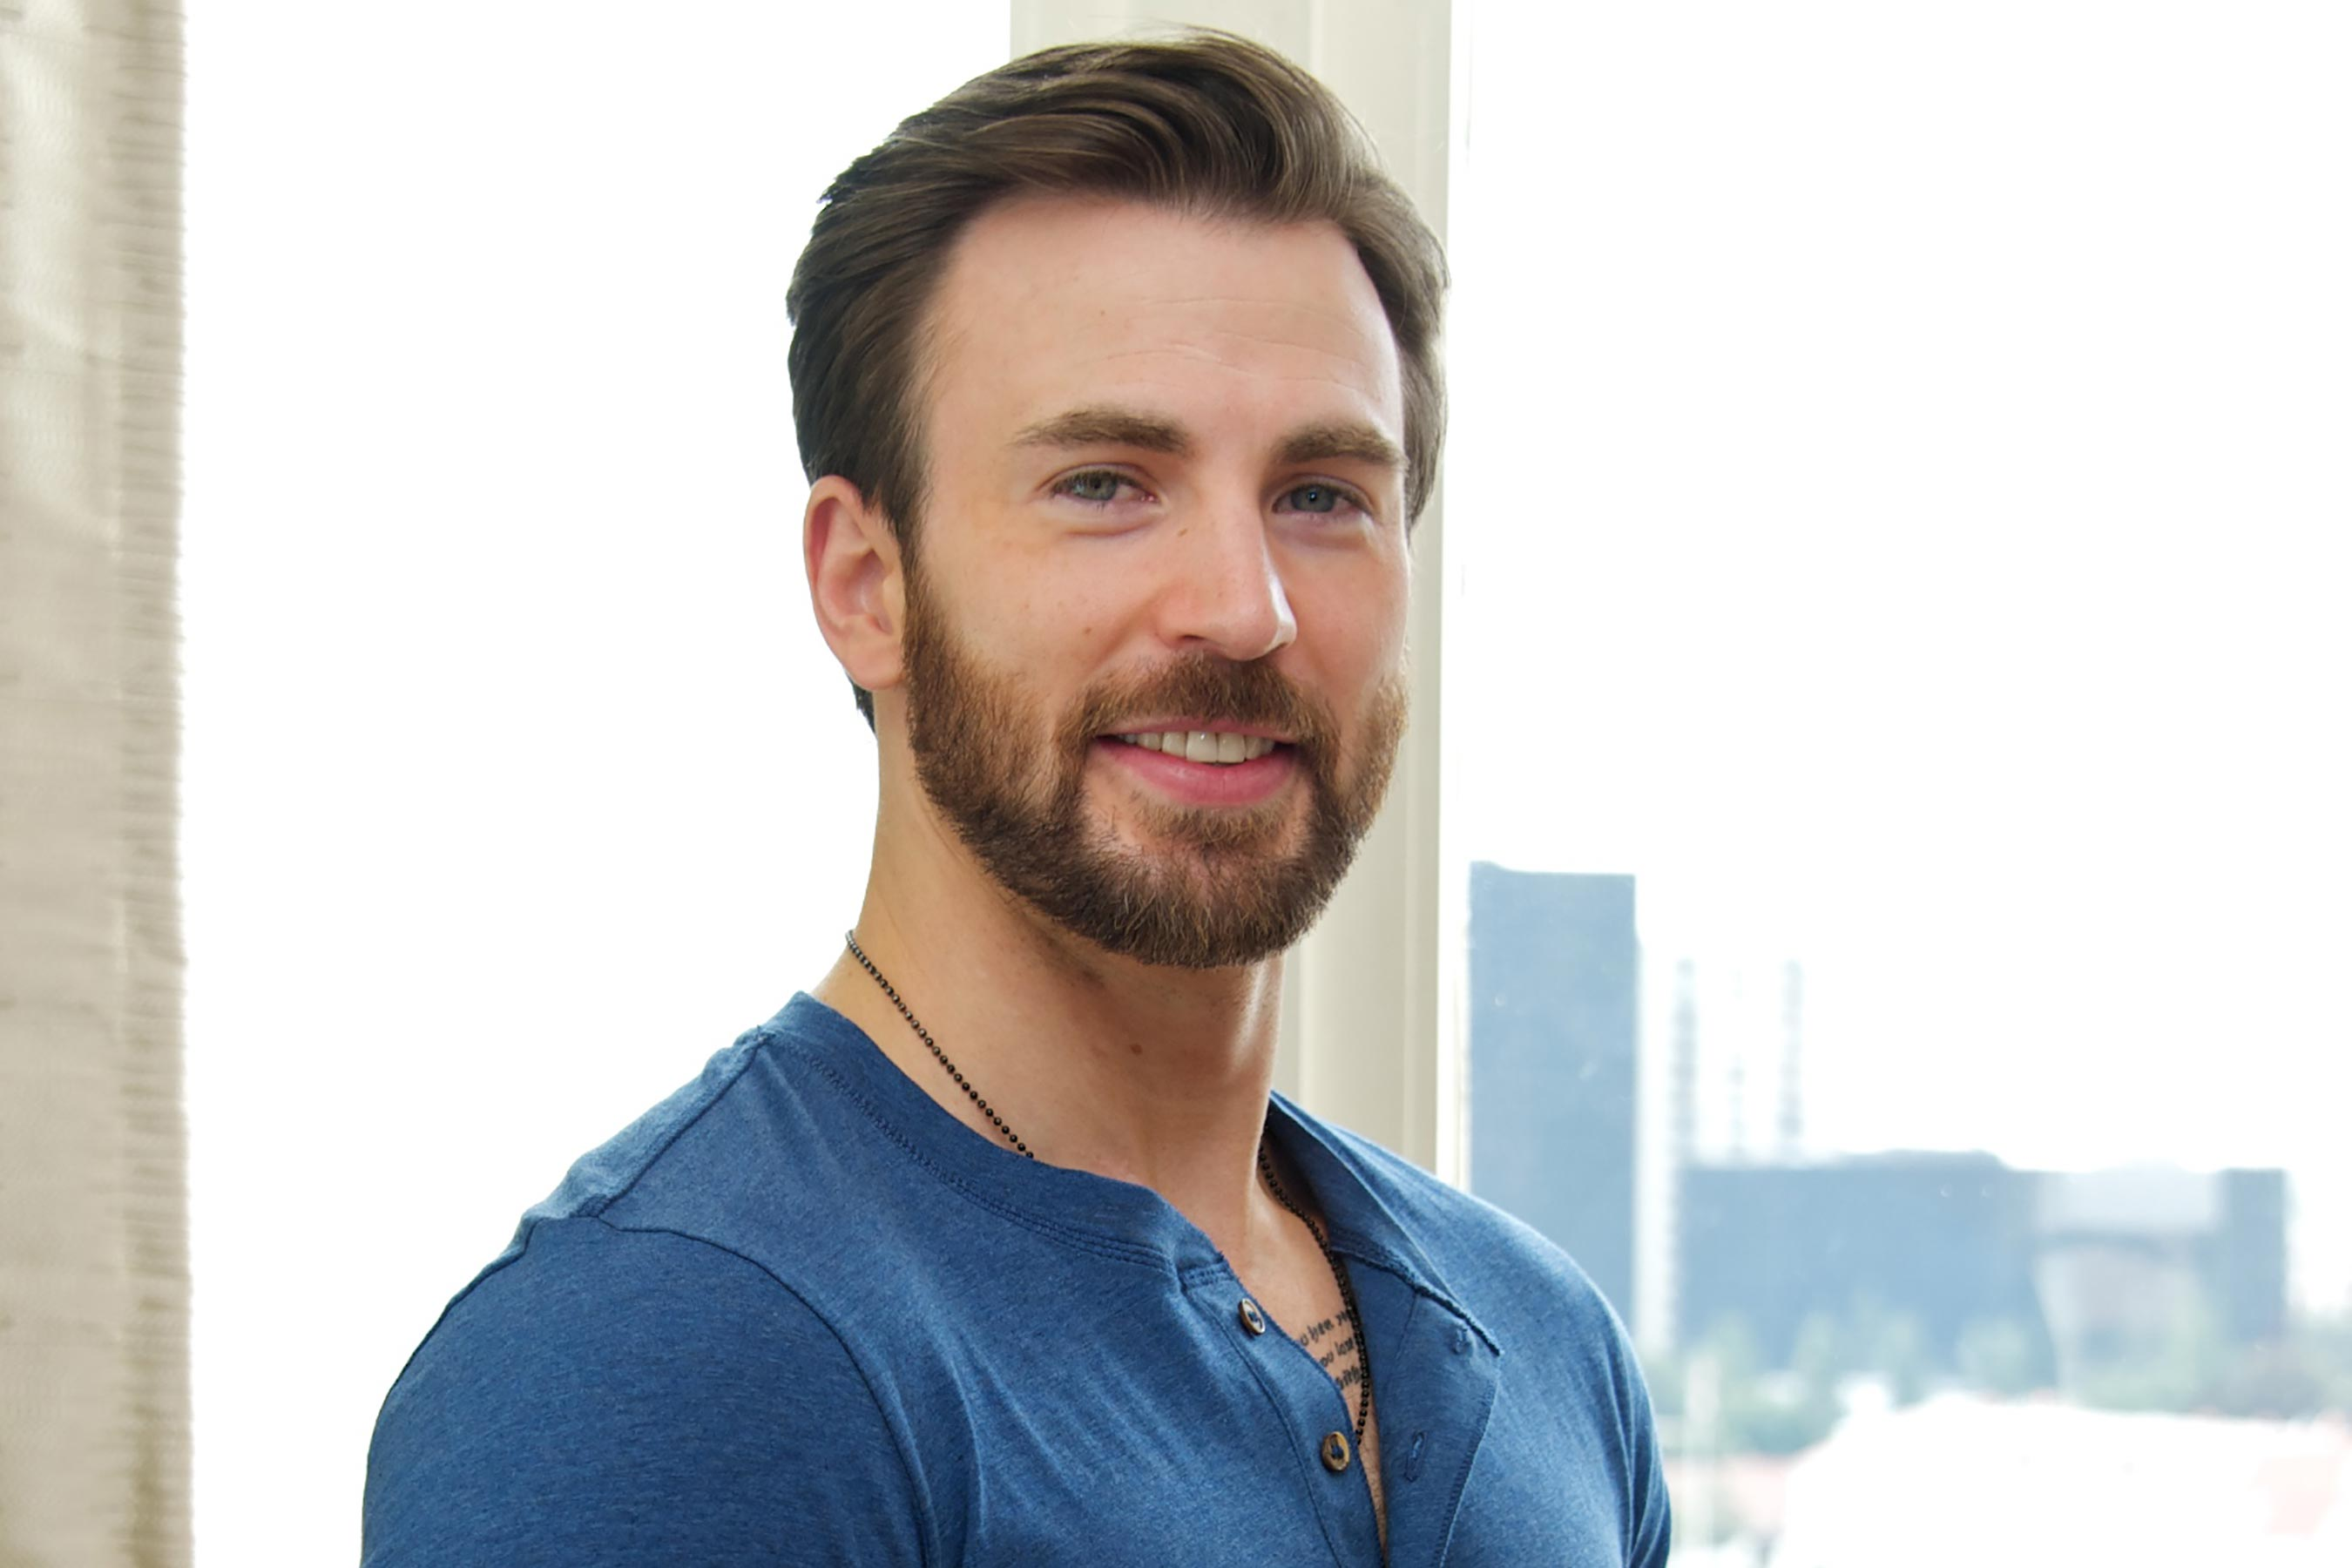 Chris Evans Wallpapers HD Backgrounds Images Pics Photos 2700x1800